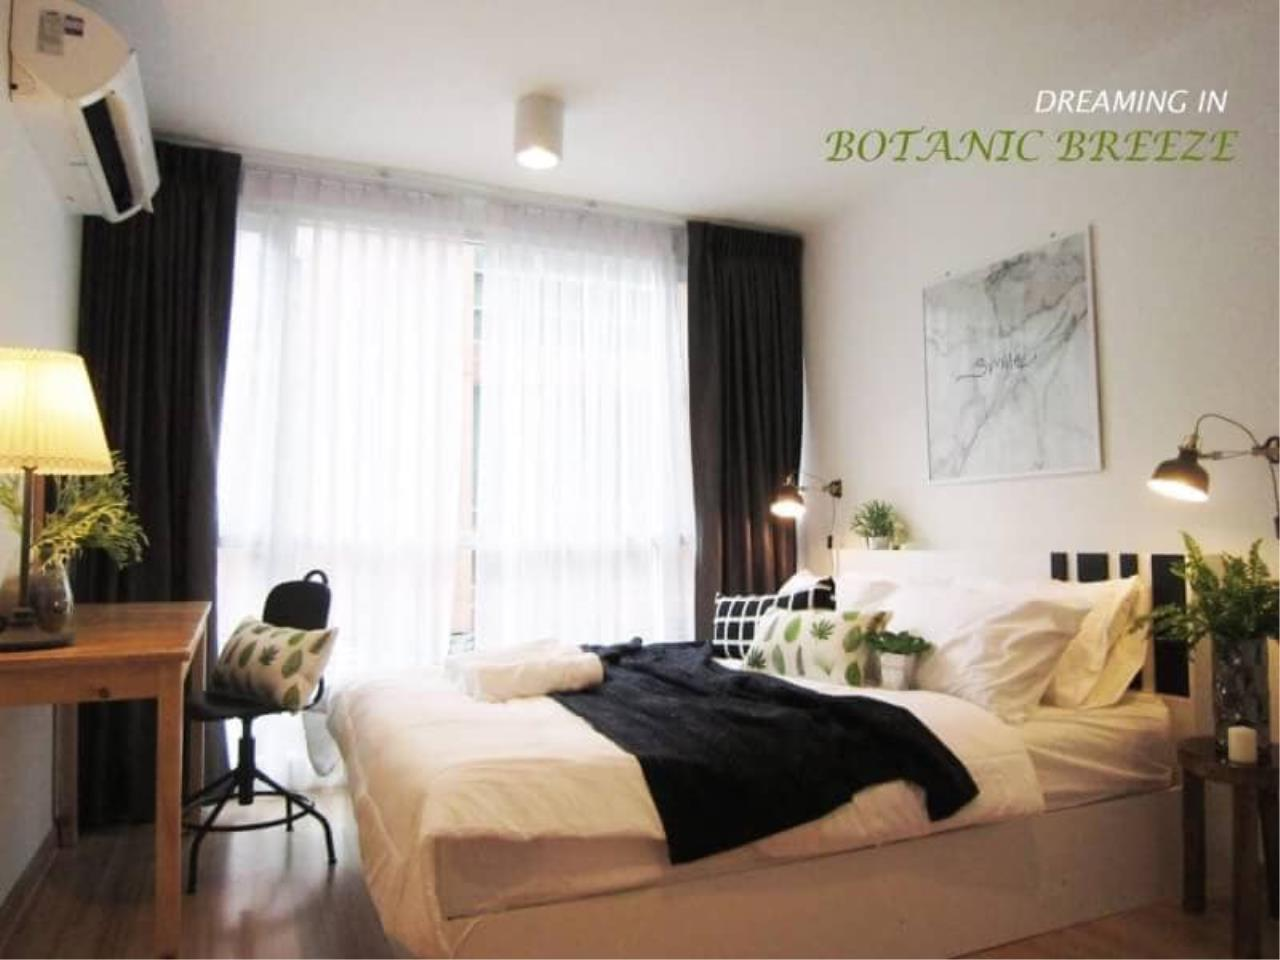 Agent Thawanrat Agency's Condo for rental Chateau In Town Ratchada 19 Near MRT.Ratchadaphisek 1 bedroom,1 bathroom. size 41 sqm. fully furnished Ready to move in 2